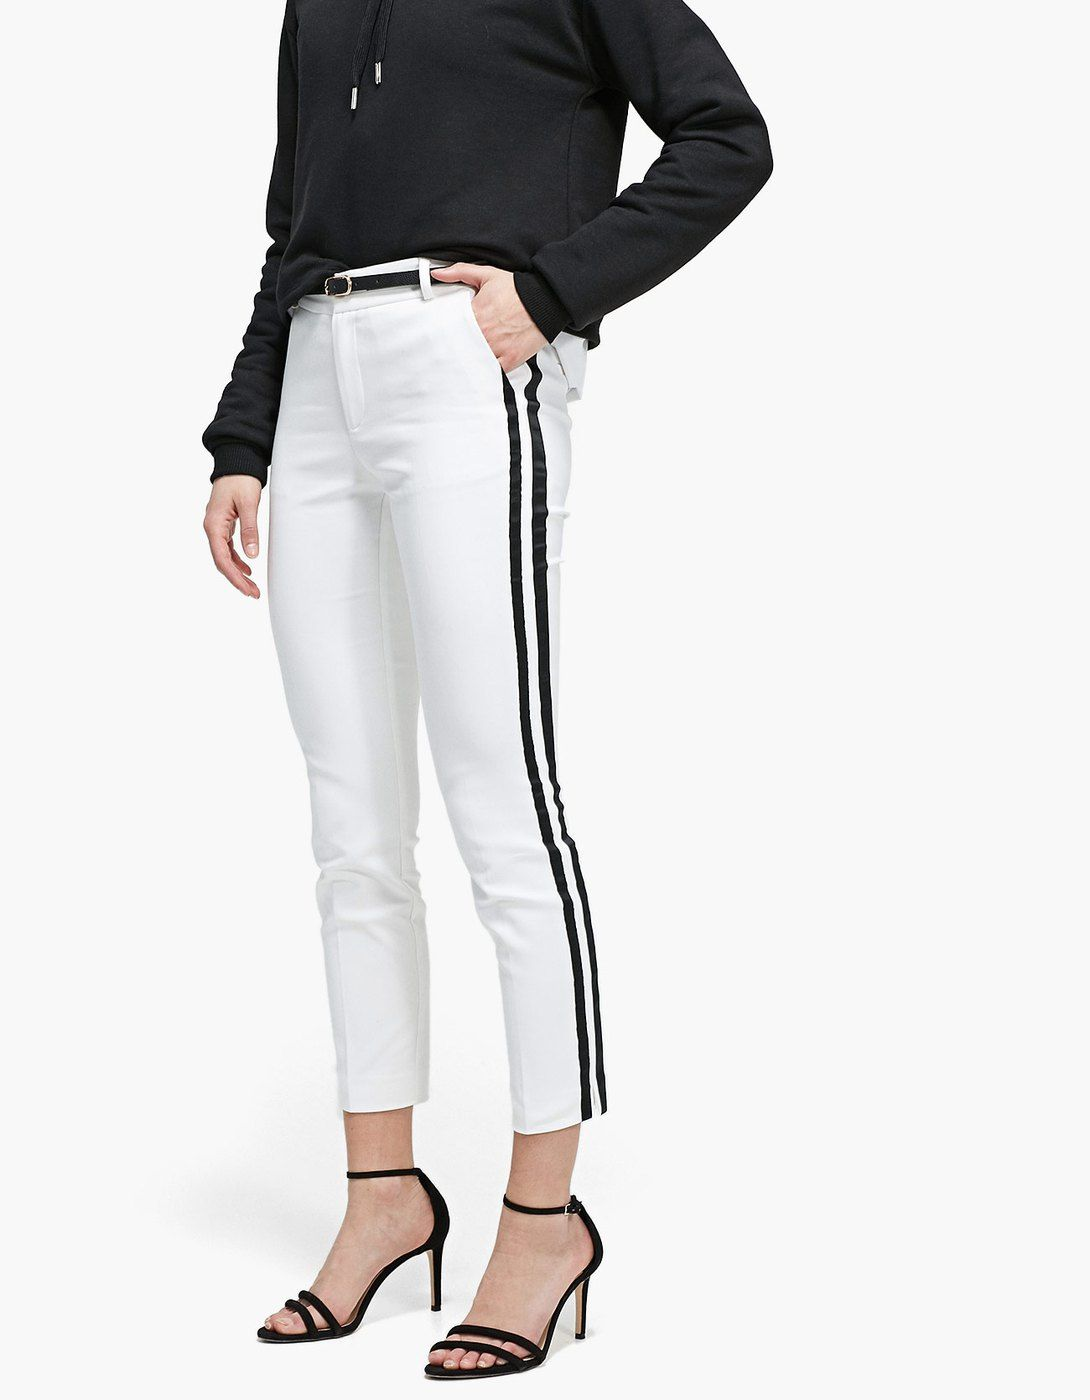 At Stradivarius you ll find 1 Pantalón vestir con cinturón banda lateral  for just 399 Mexico . Visit now to discover this and more Nuevo. a2558f67b06c